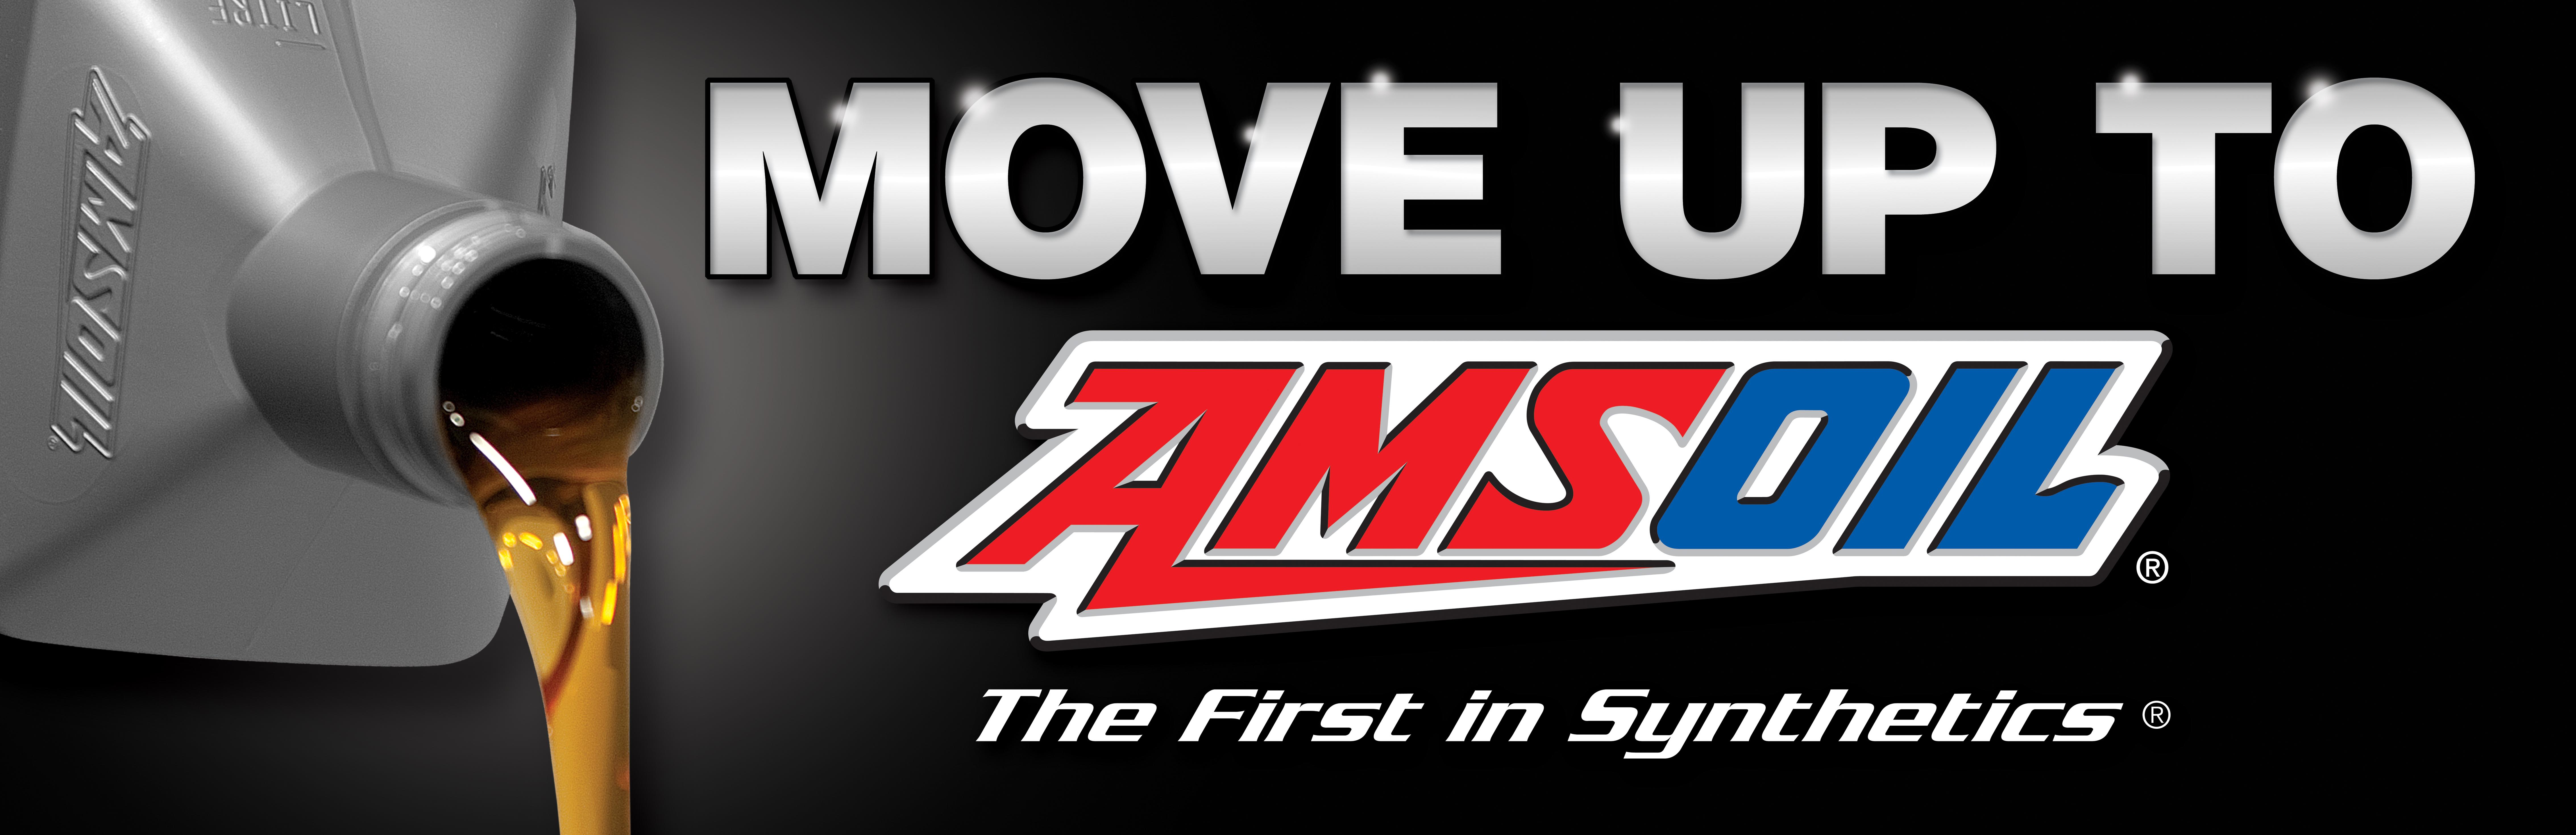 Wolfe's AMSOIL Synthetics